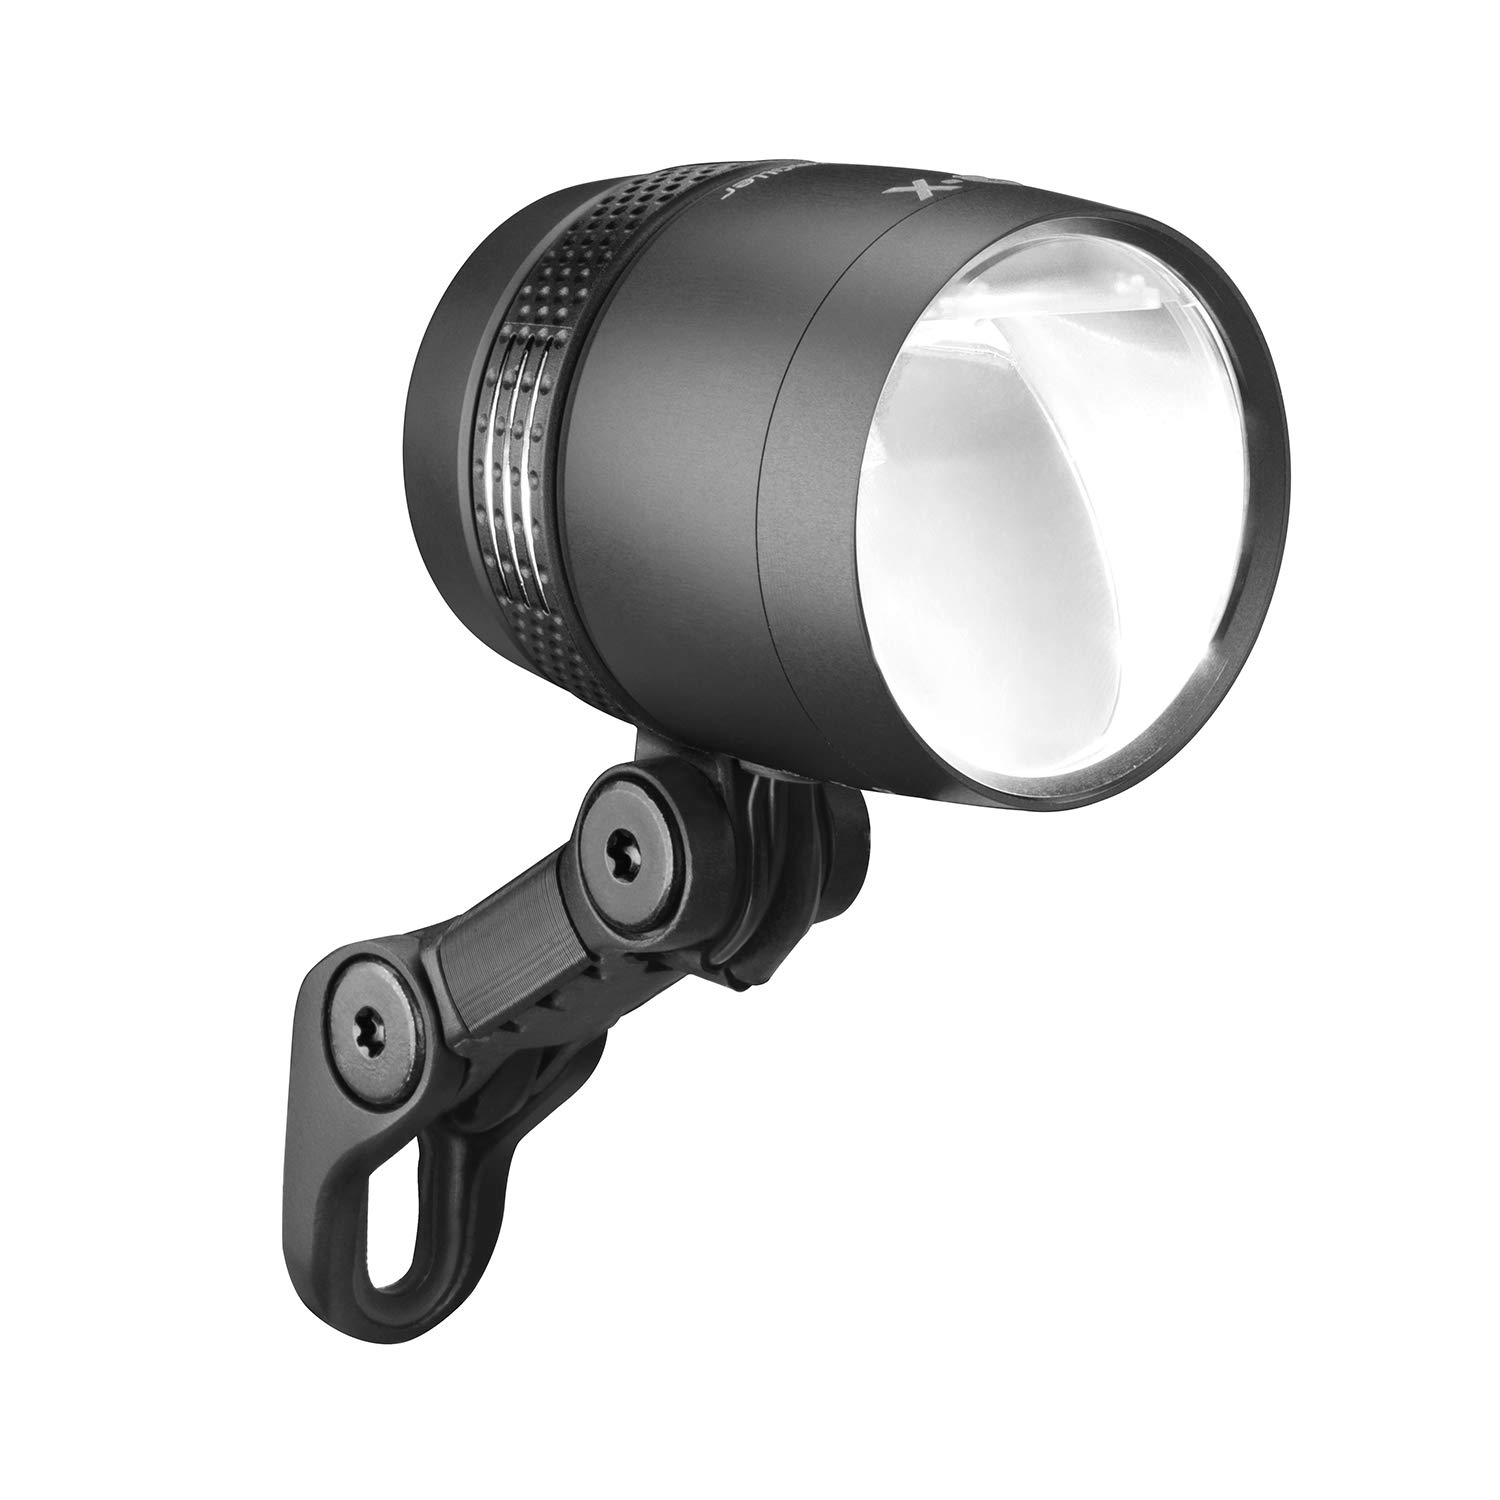 Busch M ller Lumotec IQ-X LED bicycle dynamo headlight black